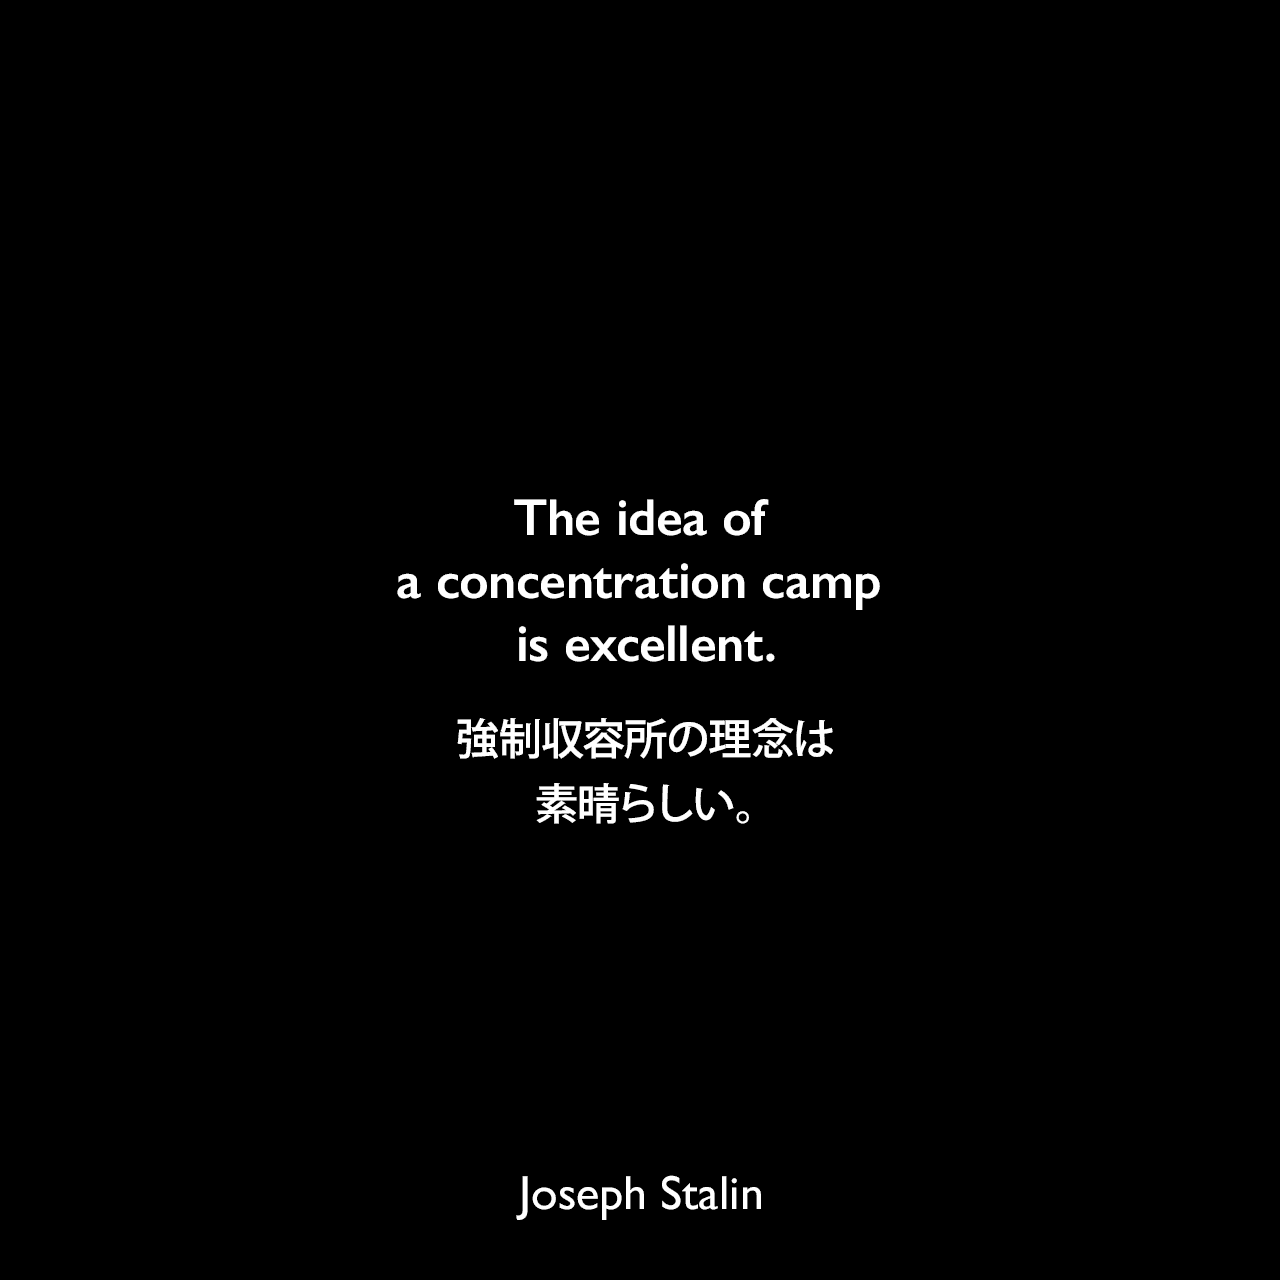 The idea of a concentration camp is excellent.強制収容所の理念は素晴らしい。Joseph Stalin